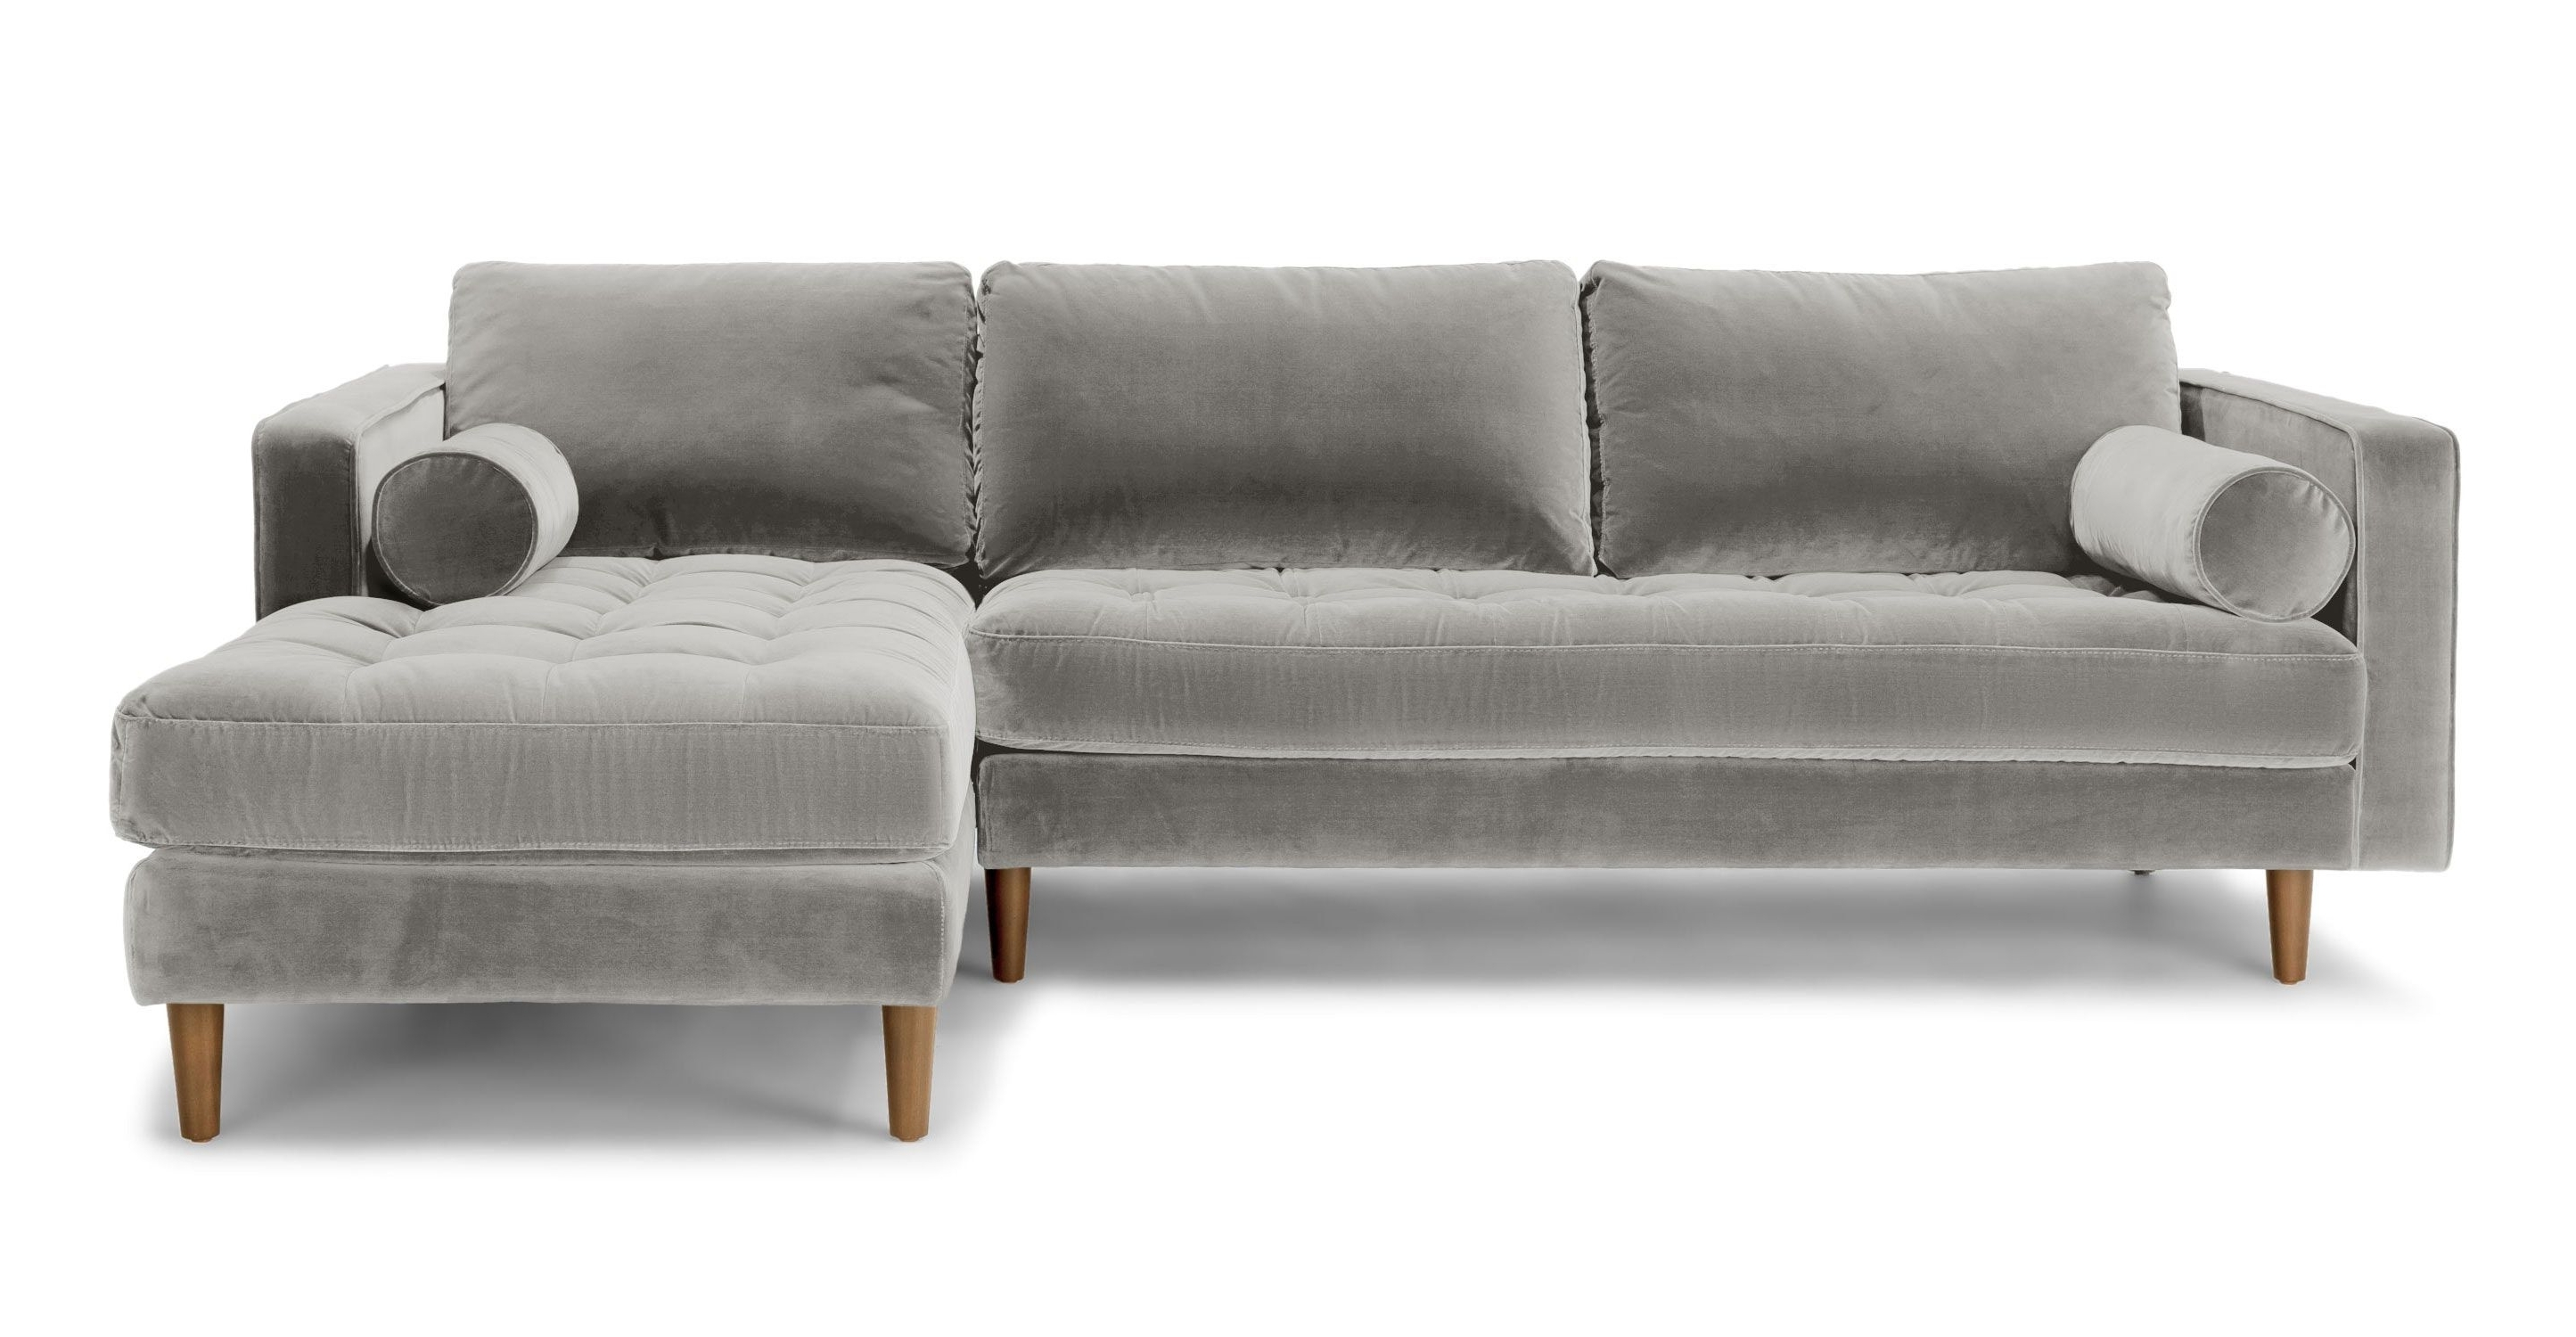 Abbieht Chaise Sectional Sofa With Large Cushionsengland Ivy Inside Well Known Regina Sectional Sofas (View 2 of 15)